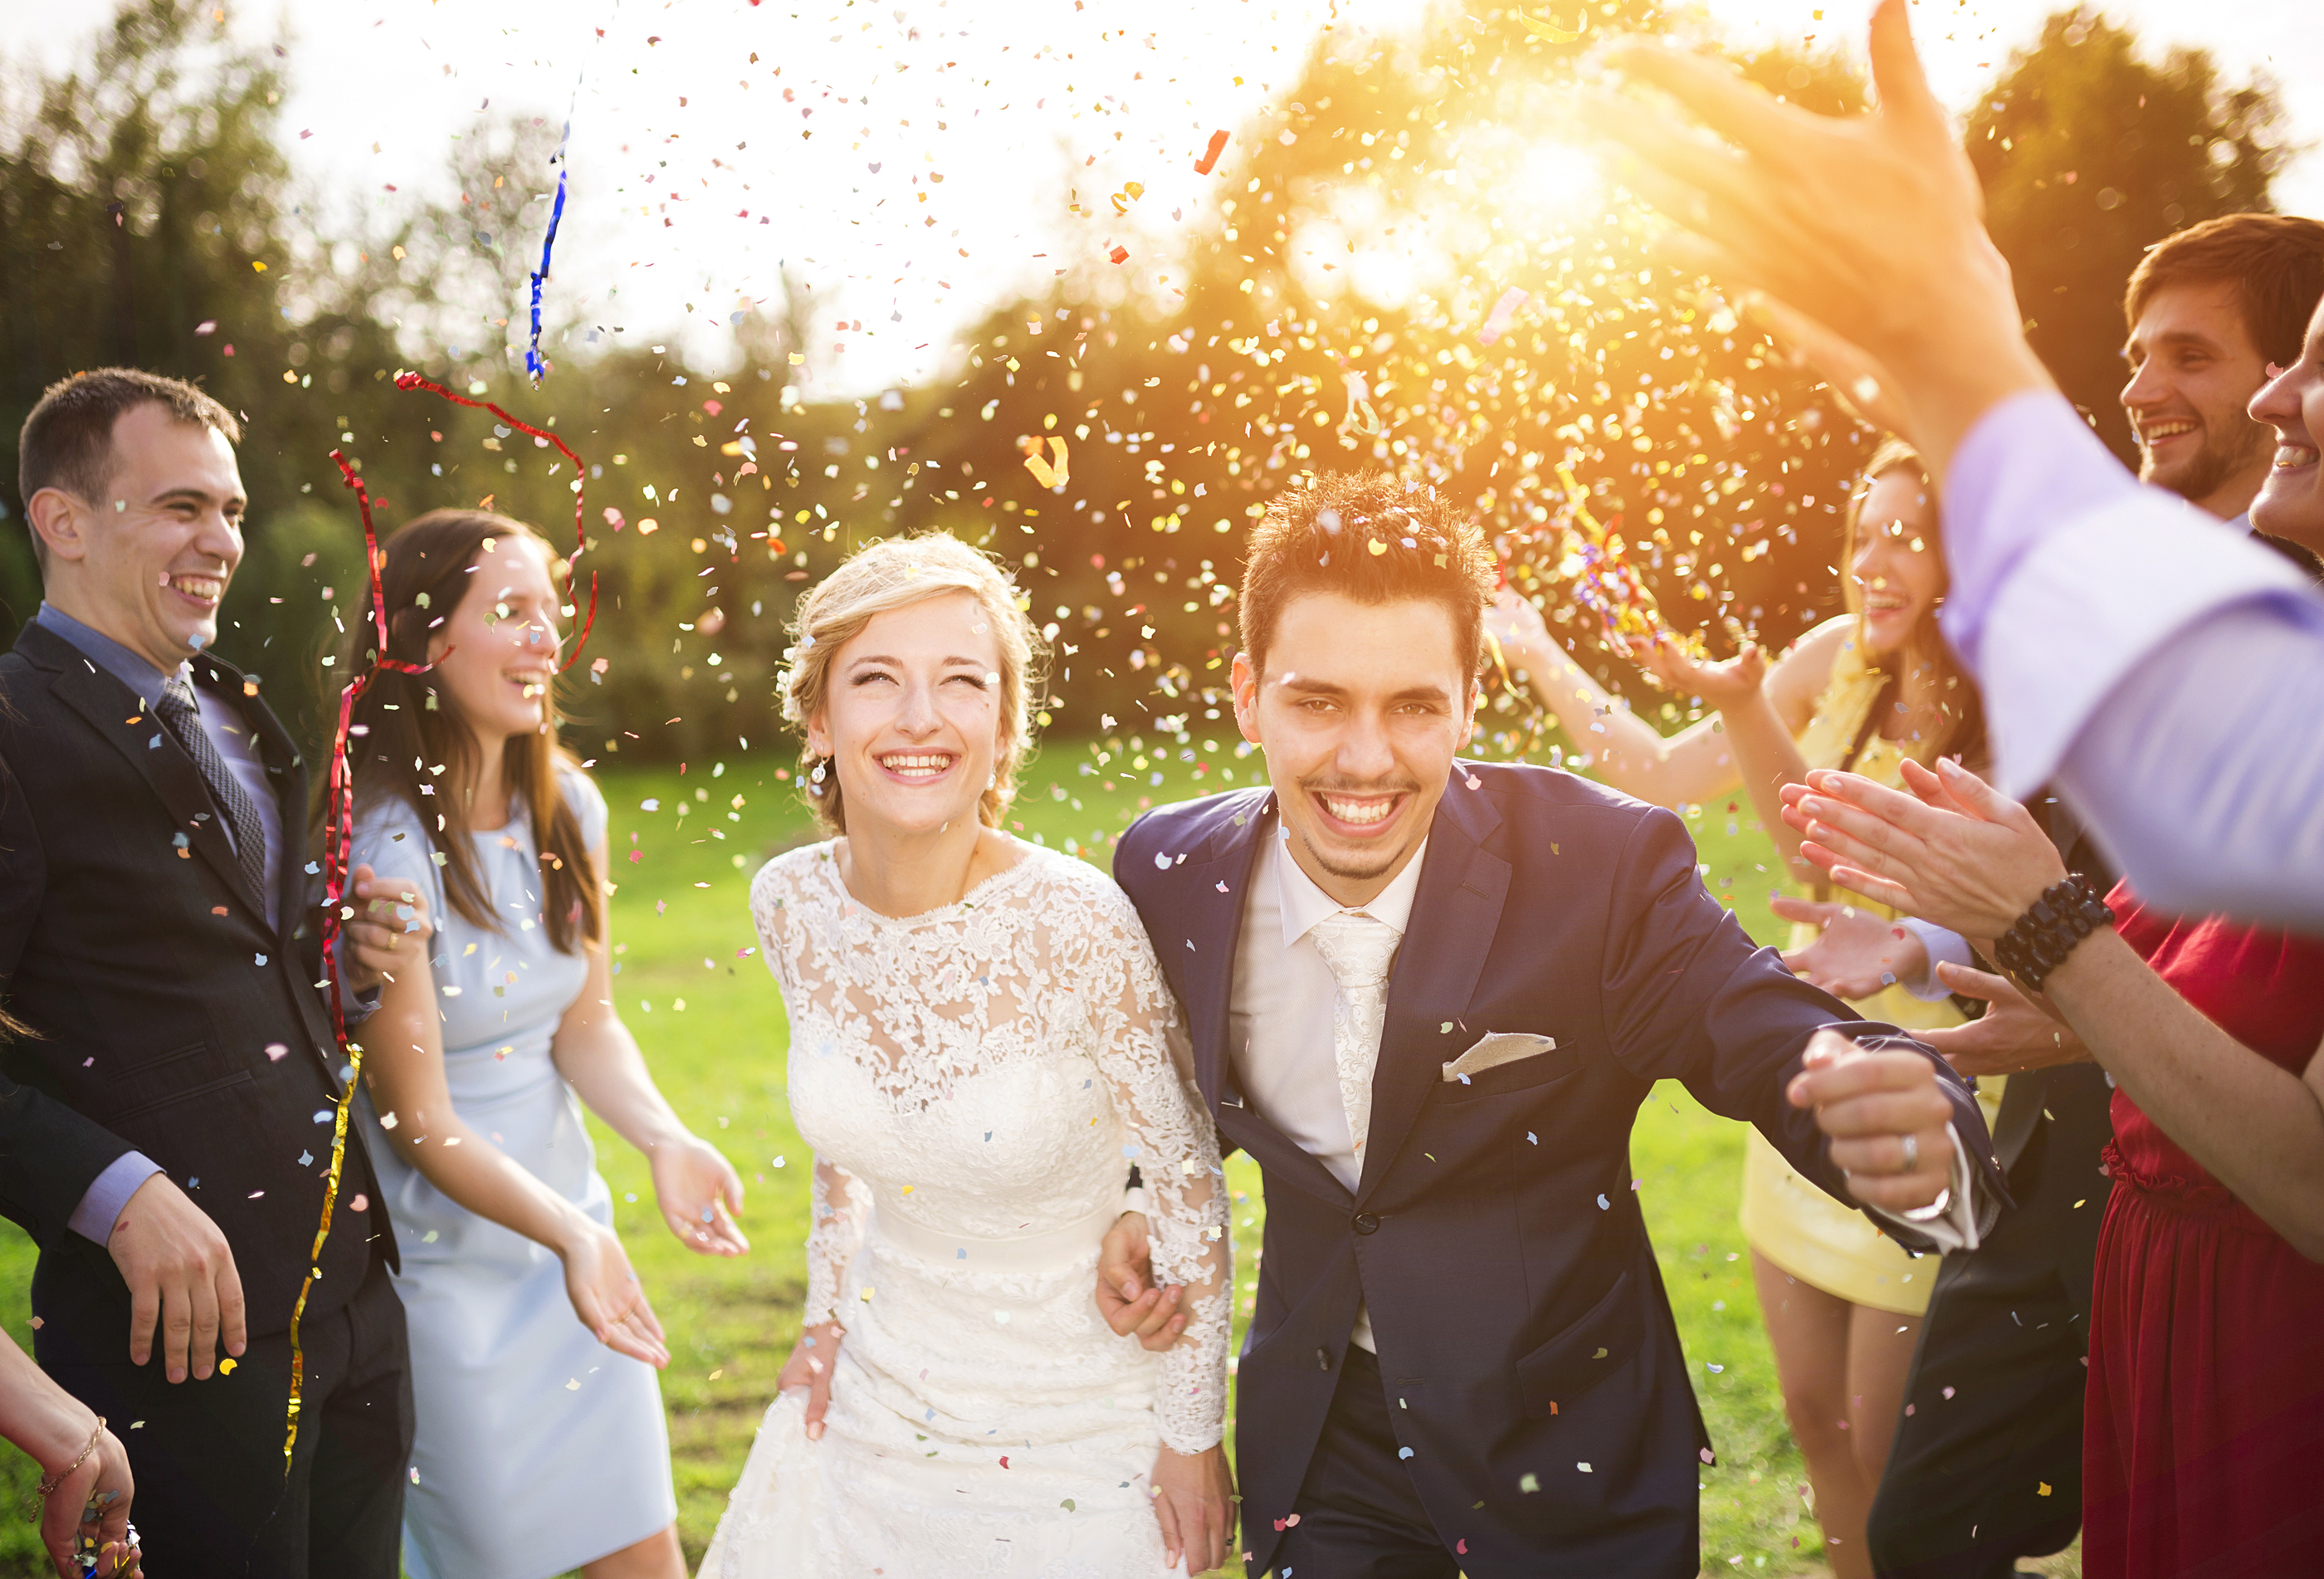 6 Tips For Being Better Prepared For Marriage Busted Halo